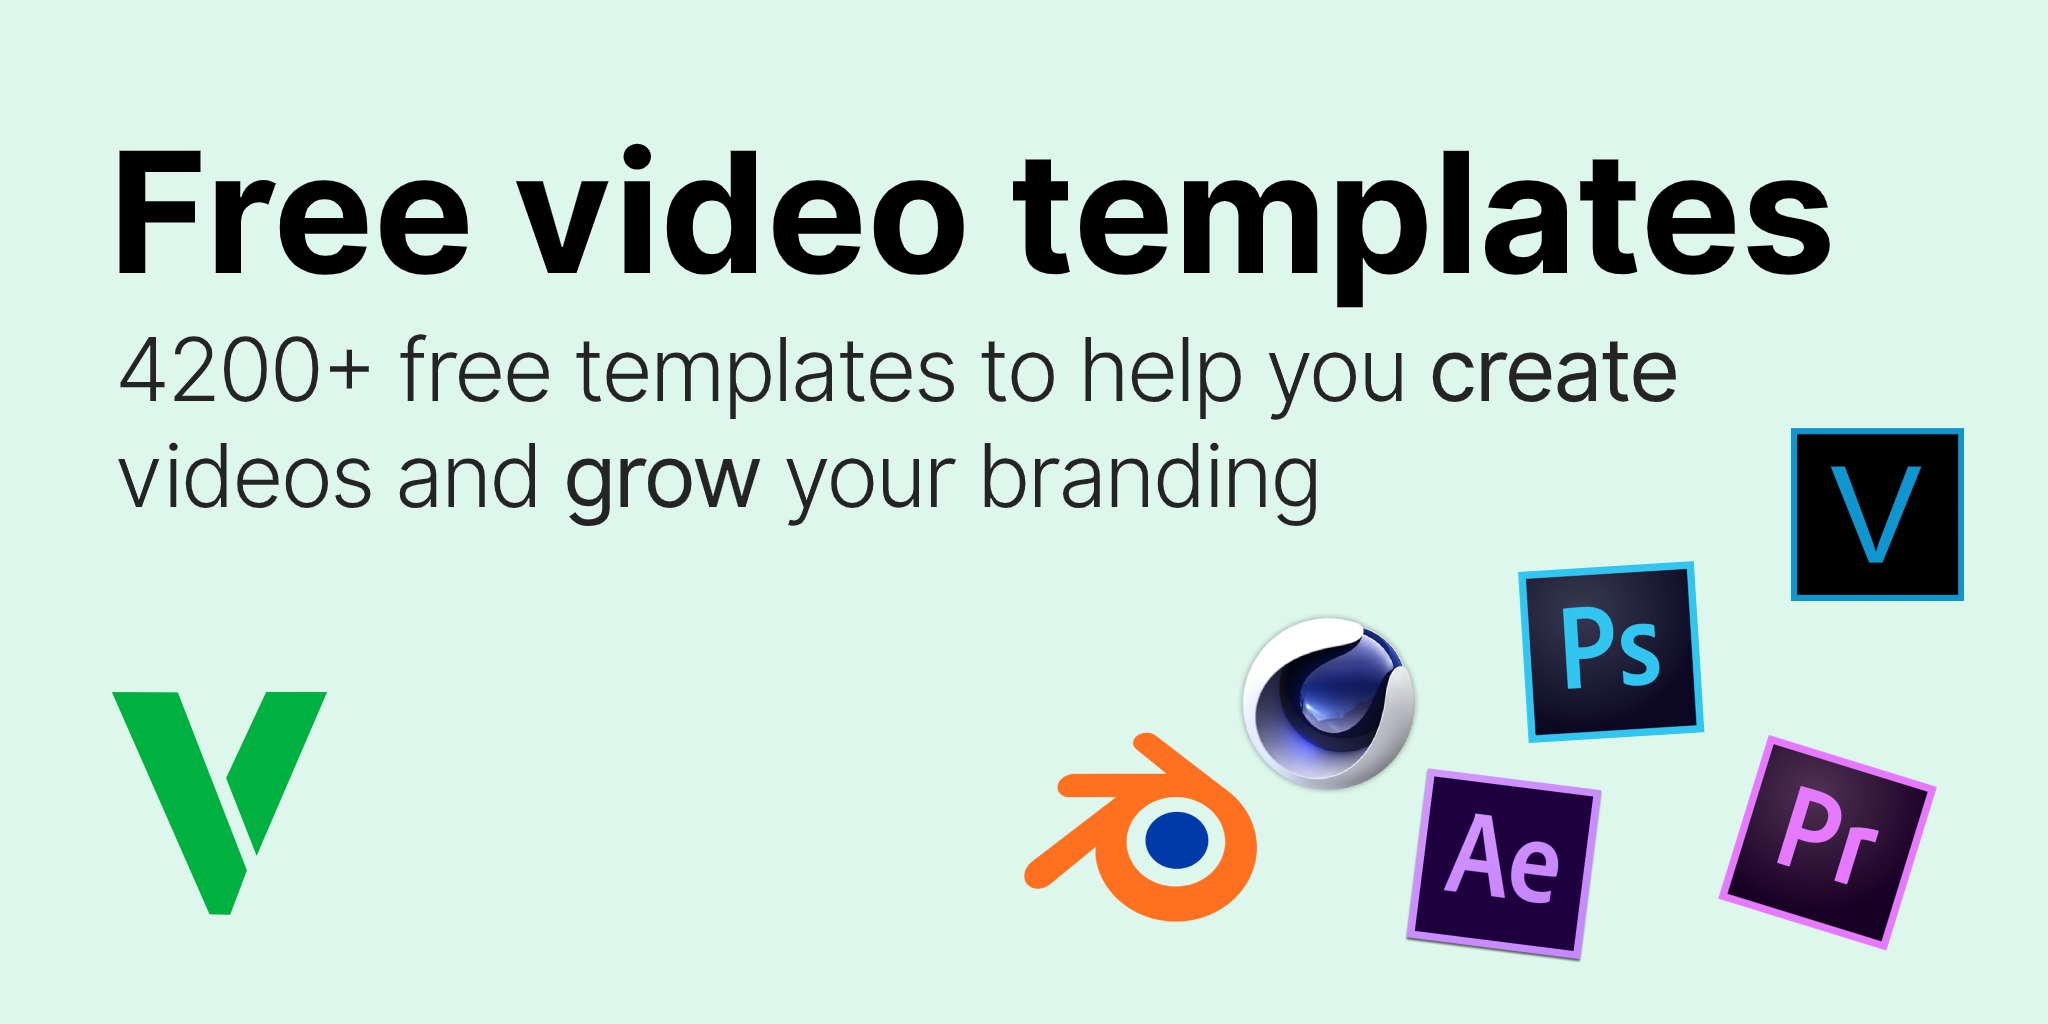 Free Video Templates - Velosofy